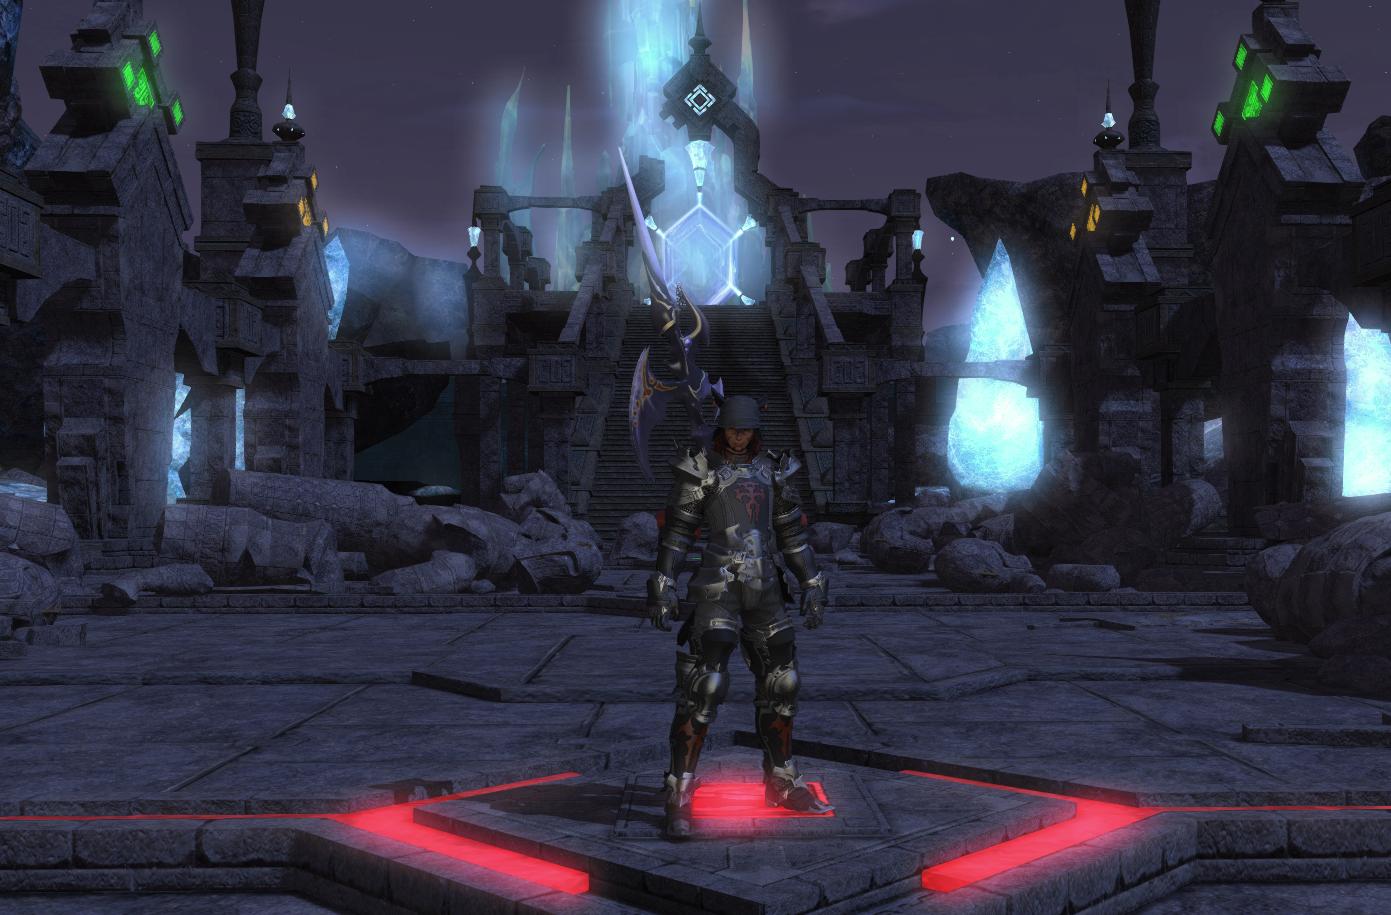 Final Fantasy XIV: A Realm Reborn - Labyrinth of the Ancients front door